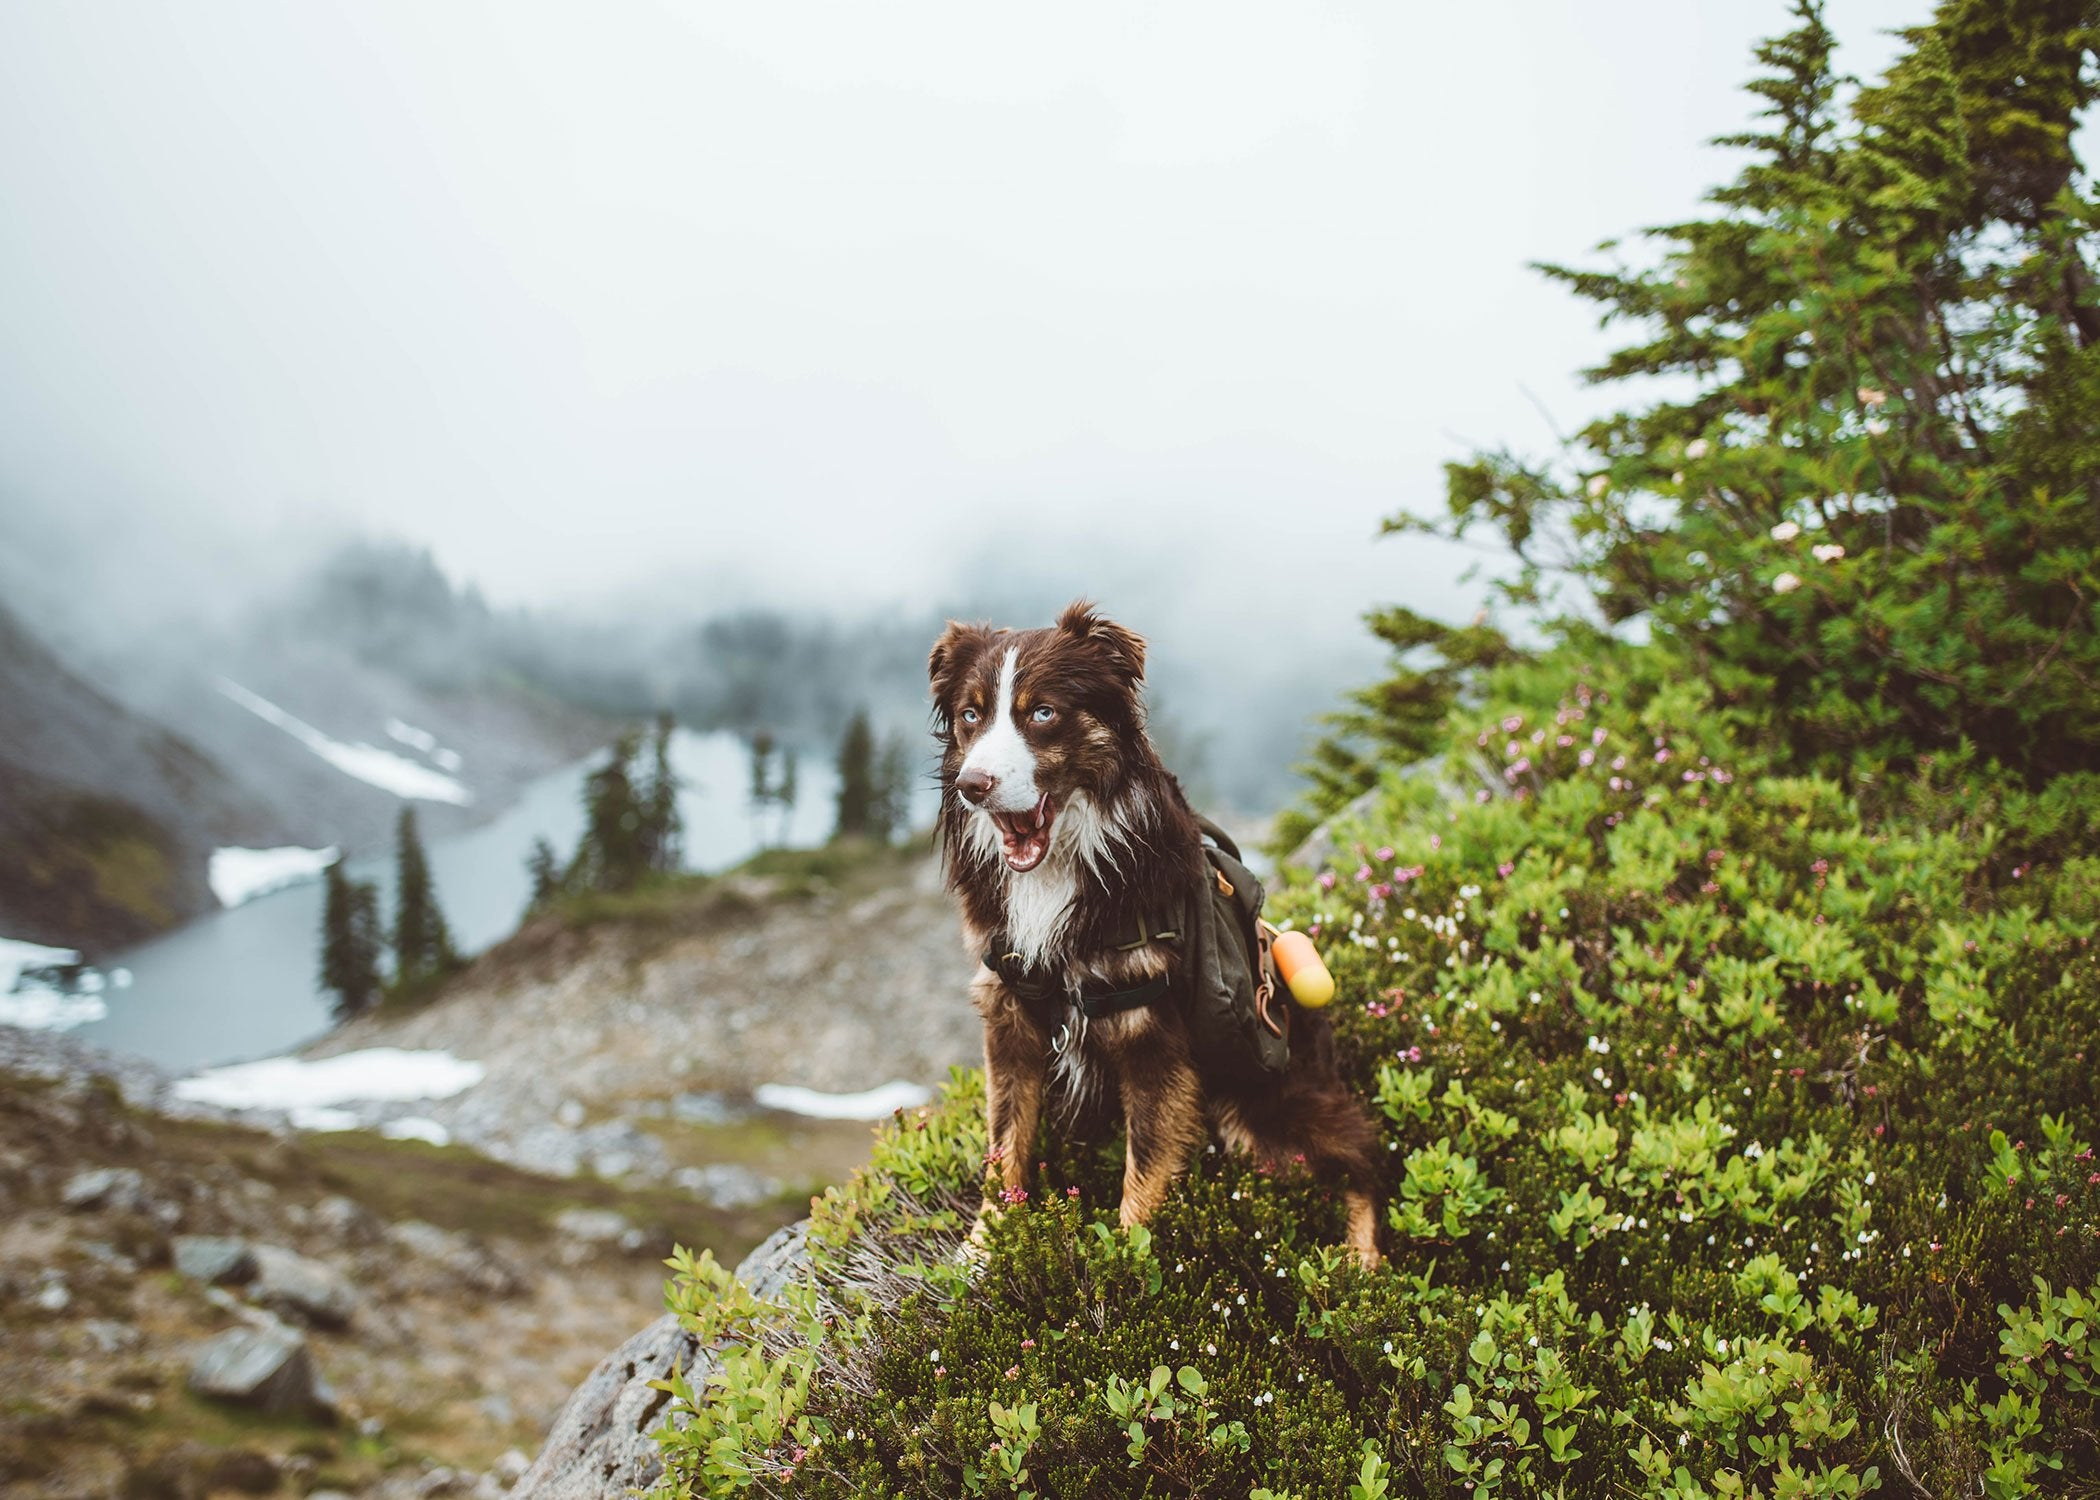 dog hiking with backpack outdoors